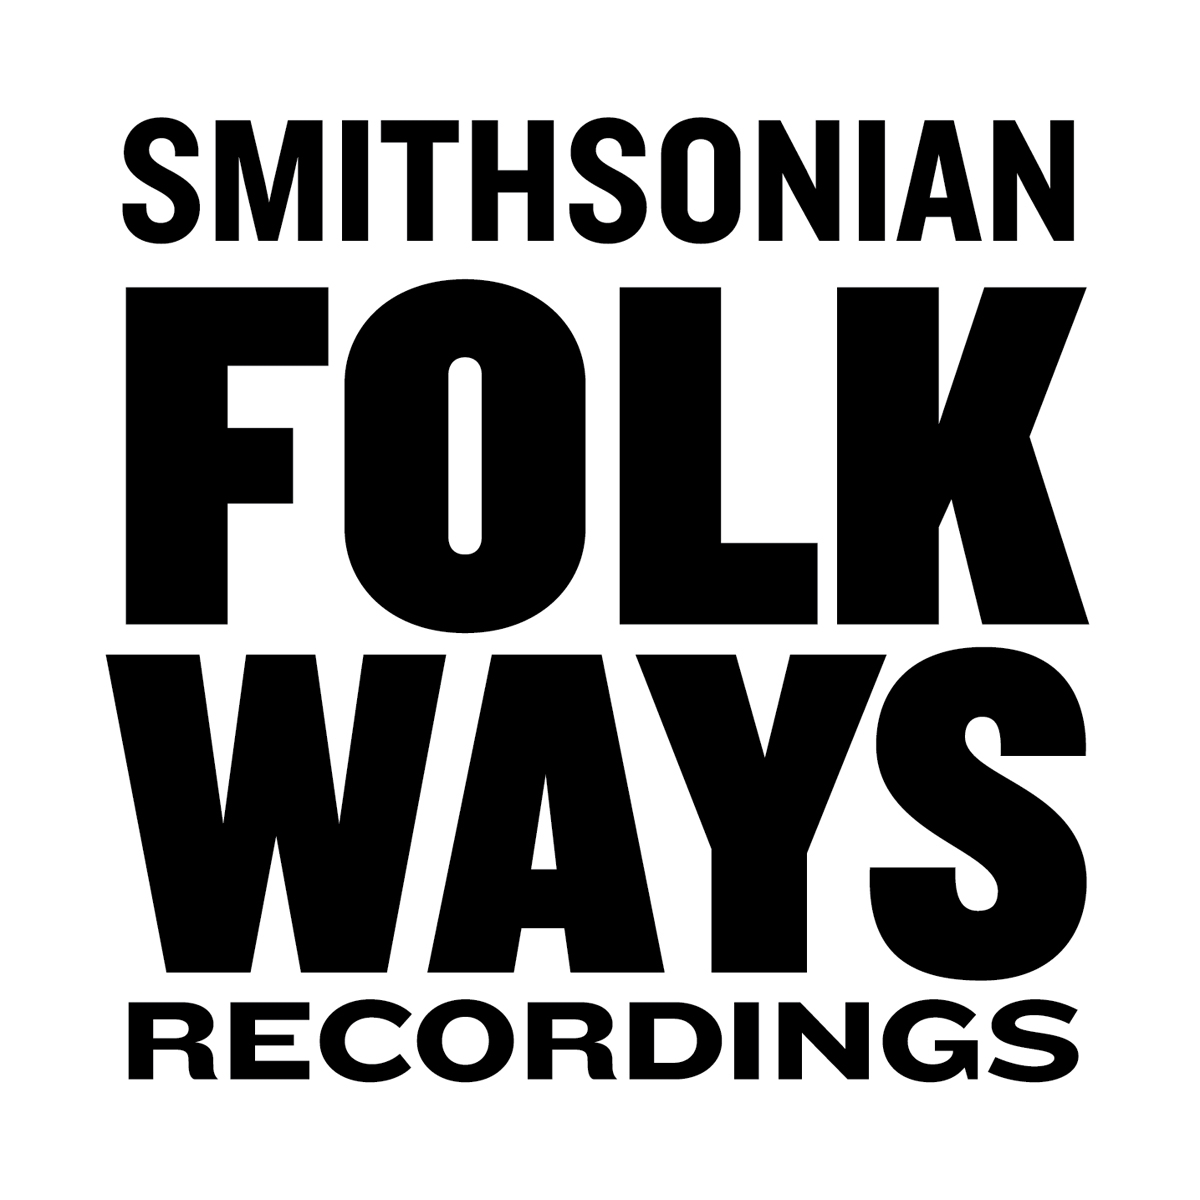 Smithsonian Folkways is the non-profit record label of the United States. Its mission is to document and celebrate traditional culture throughout the world. It began as Folkways Records in 1948 and was founded by Moses Asch and Marian Distler.  The Asch estate sold the label to the Smithsonian Institution in 1987, negotiated by Ralph Rinzler, an important documenter of Appalachian music. It was re-born again the following year as Smithsonian Folkways to carry on the Asch legacy. One of the key missions of the label continues to be to provide deep information about the artists and region in the liner notes.  Smithsonian Folkways has had a long history of releasing titles of Appalachian music beginning with Hobart Smith and Texas Gladden during the Asch Records period.  The label was the prime destination for folklorists looking to publish their recordings from the region. During the era of the great folk song revival musician/folklorists like Mike Seeger, John Cohen, Sandy Paton and Ralph Rinzler brought their work to the public through Folkways. They published extensive liner notes discussing the history of the songs and music. Others Asch published were Hazel and Alice and the Country Gentlemen.  The music of the Appalachian Region has always been a central part of what Smithsonian Folkways does. As it moves on into time, projects by Anna and Elizabeth, Rhiannon Giddens and Dom Flemons, formerly of the Carolina Chocolate Drops will continue the legacy.